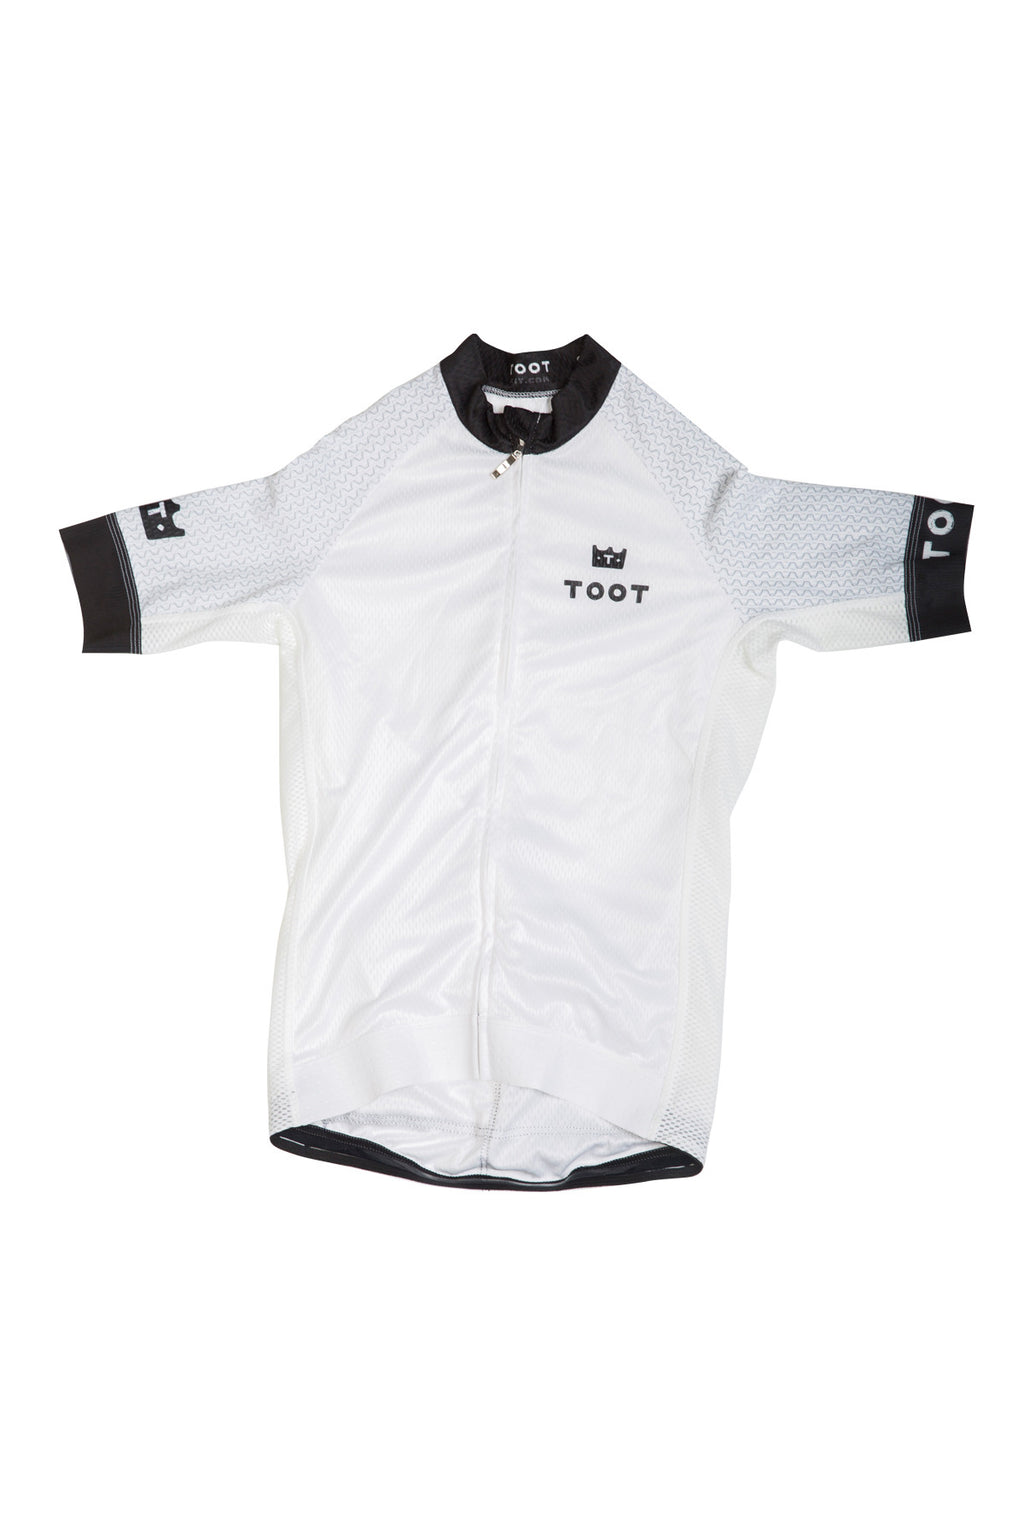 Toot White Womens Cycling Jersey Doodle Design